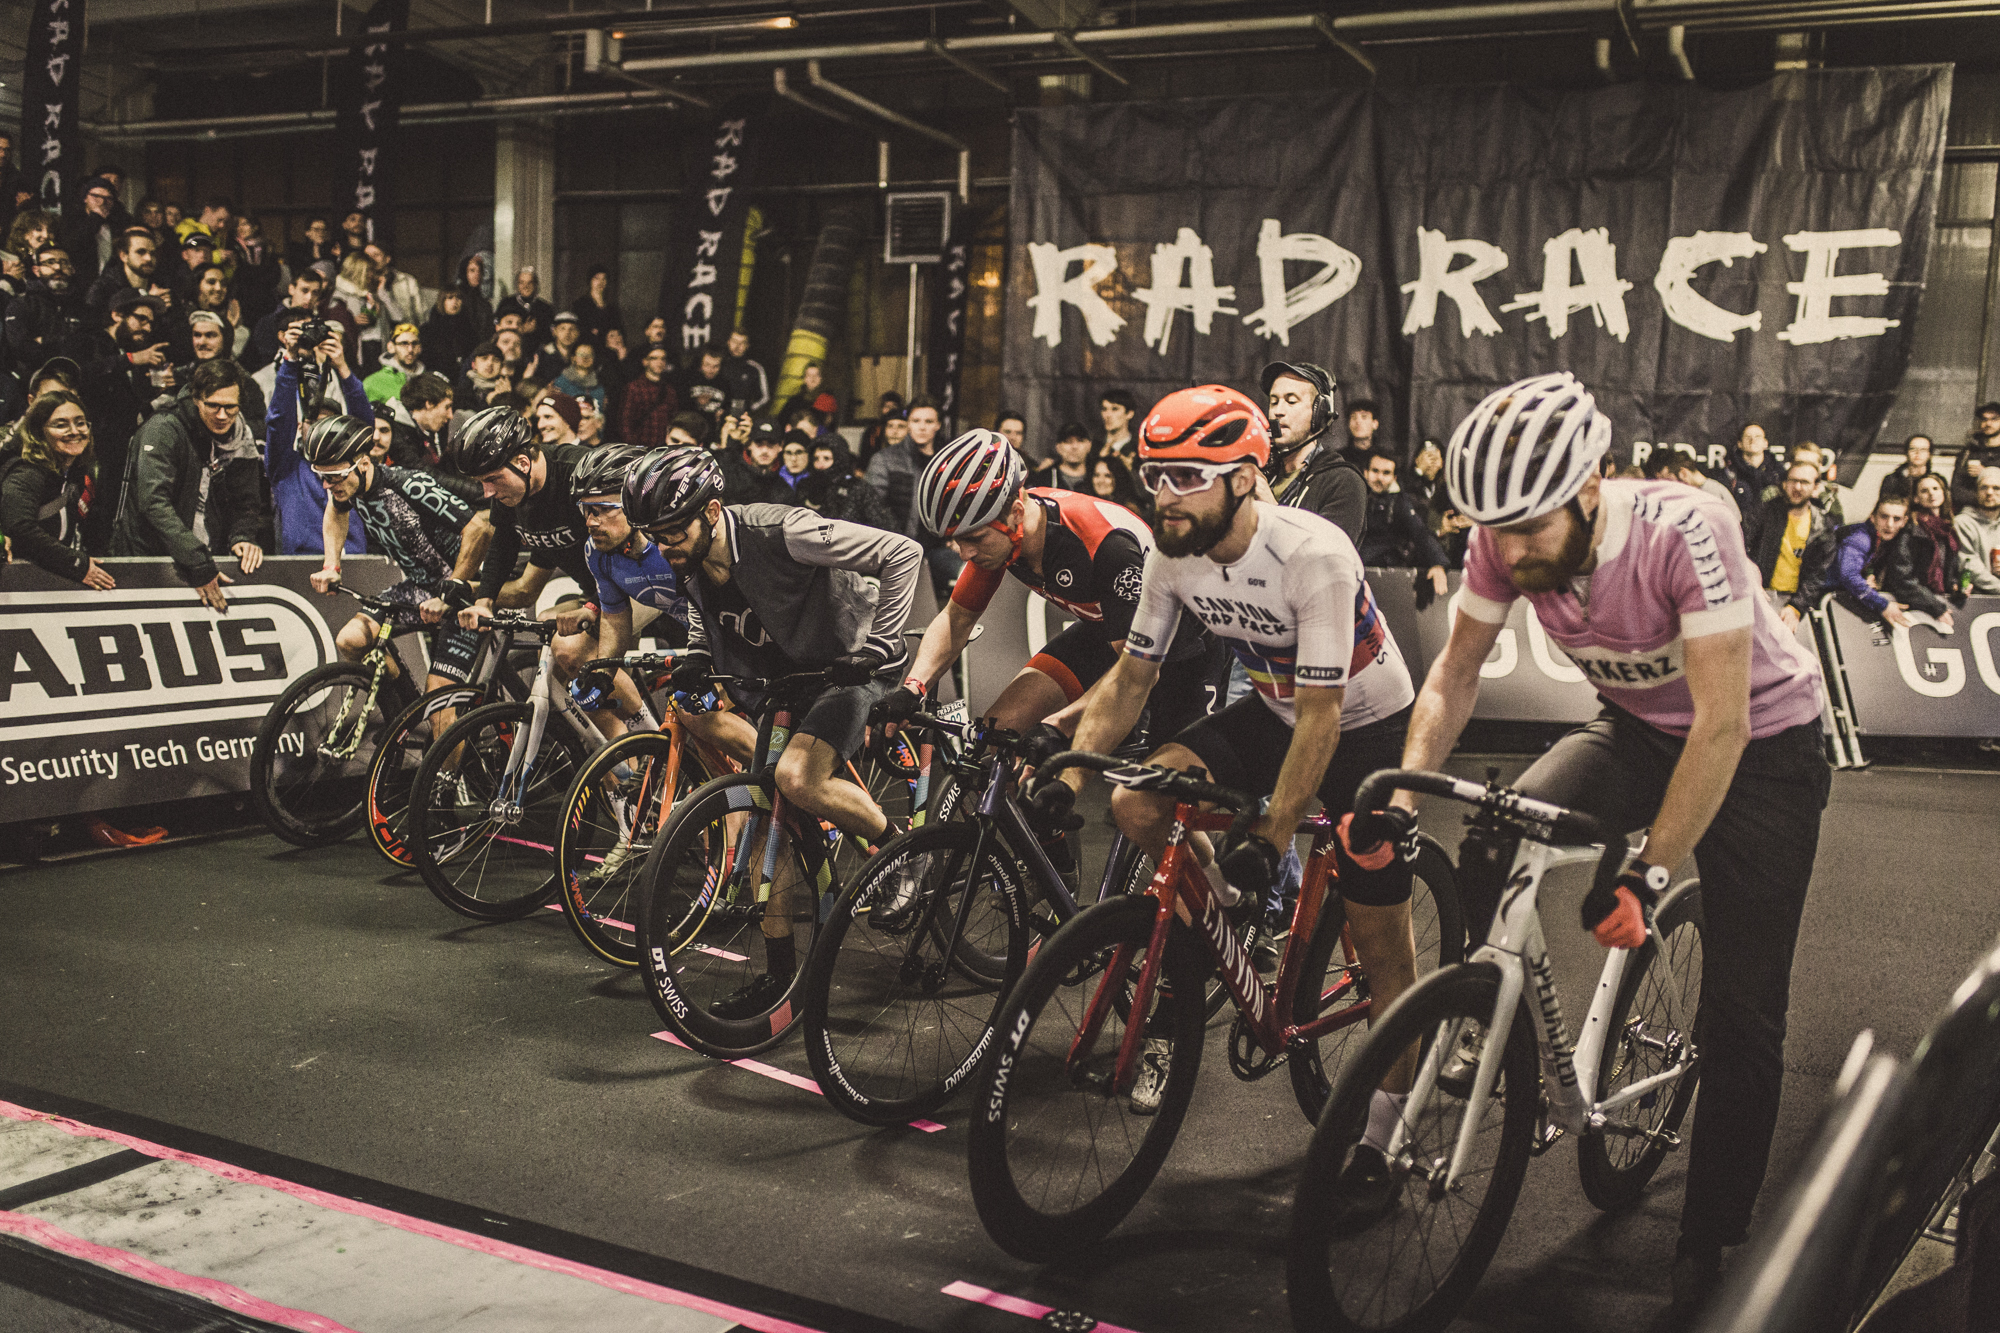 Rad_Race_Berlin_2019_Arturs_Pavlovs (94 of 110).jpeg